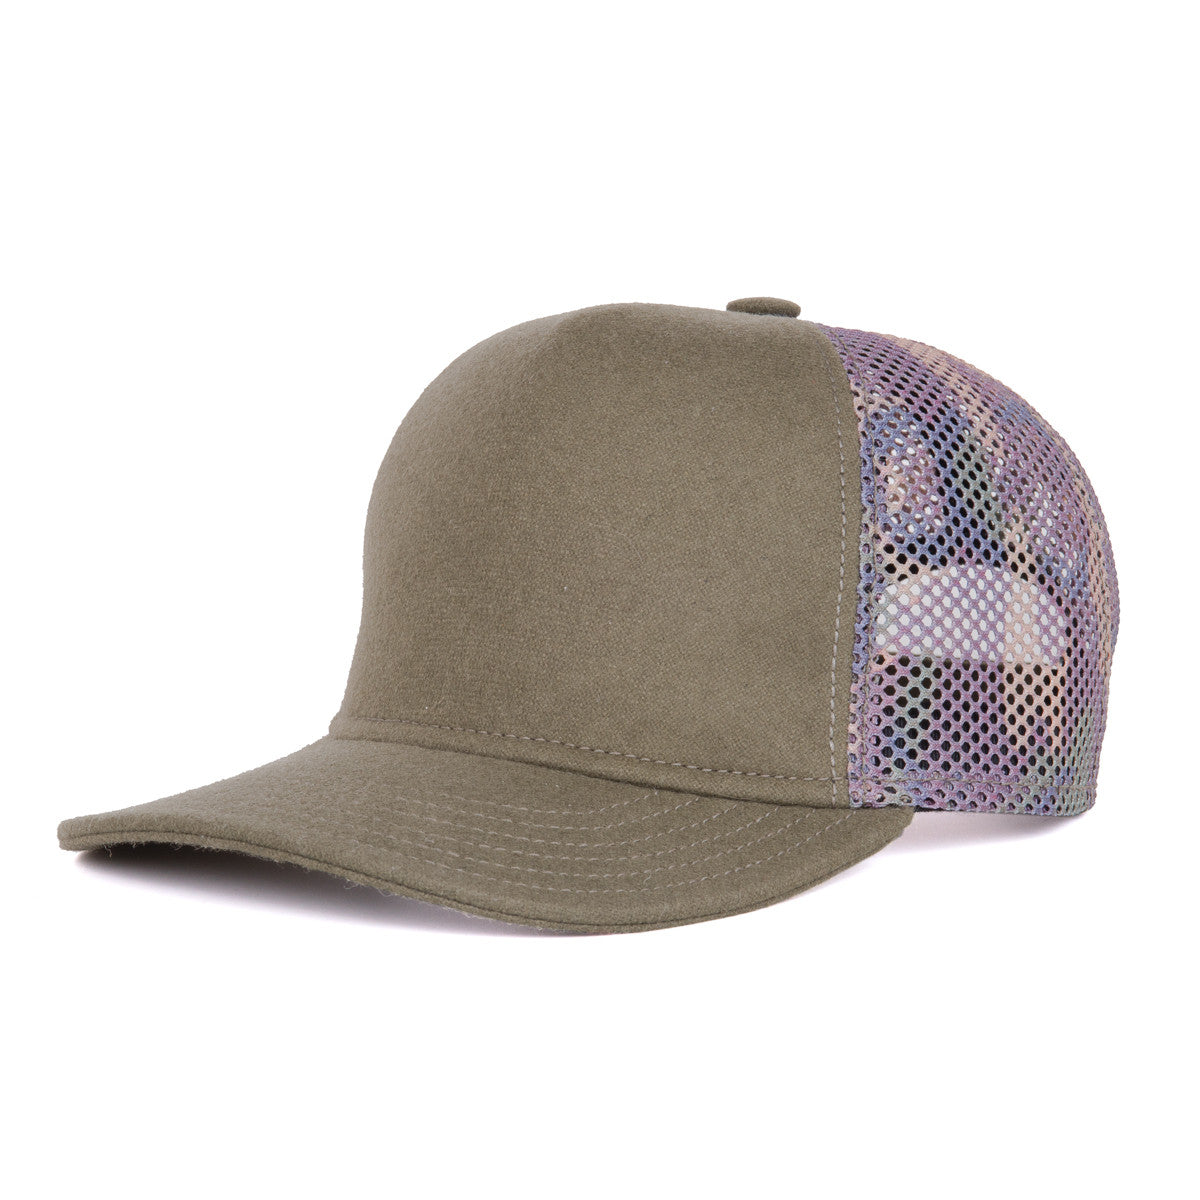 Faust Trucker Hat - Olive   Camo – Atelier Faust 90bd4265c0f